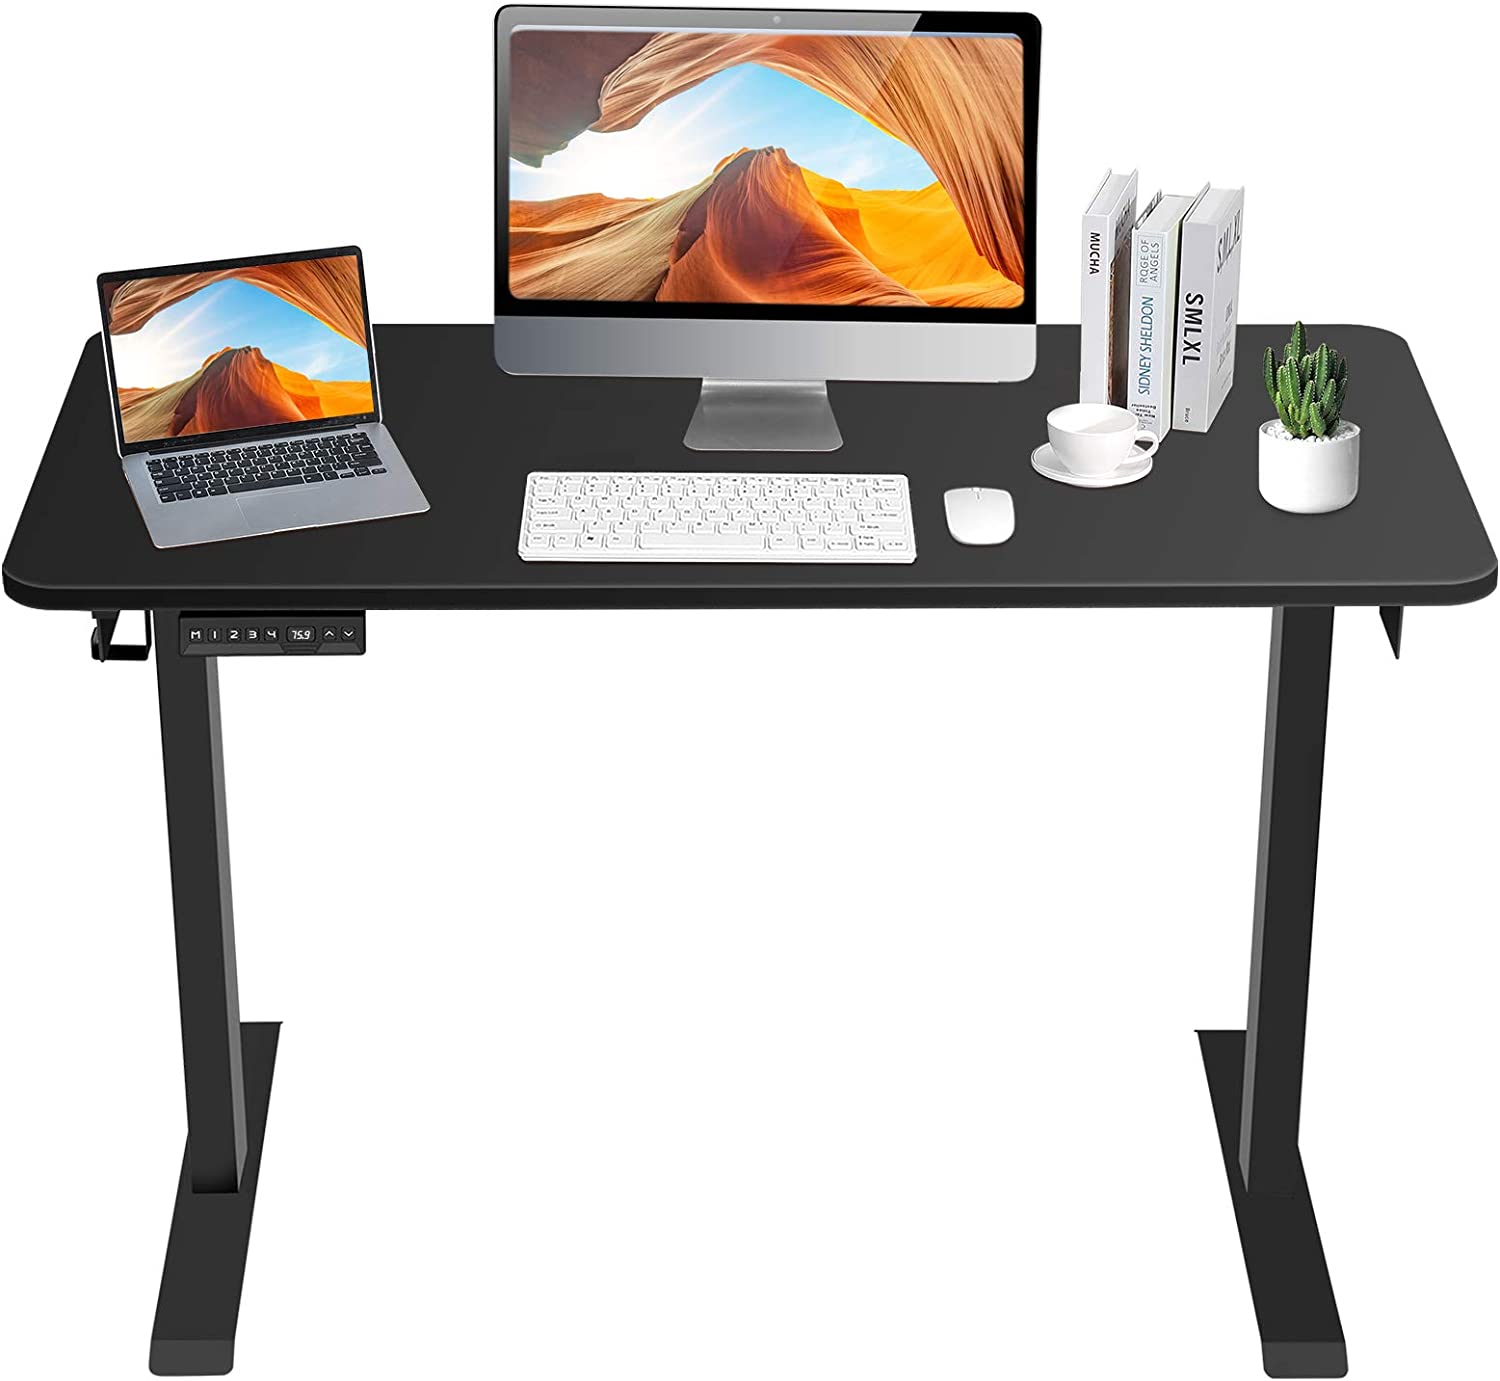 ELEFU Electric Standing Desk, 48 x 24 Inches Adjustable Height Desk with Whole Piece Desktop, Quick Assembly, Ergonomic Memory Controller, Ultra-Quiet Adjustment, Sit Stand Home Office Desk, Black